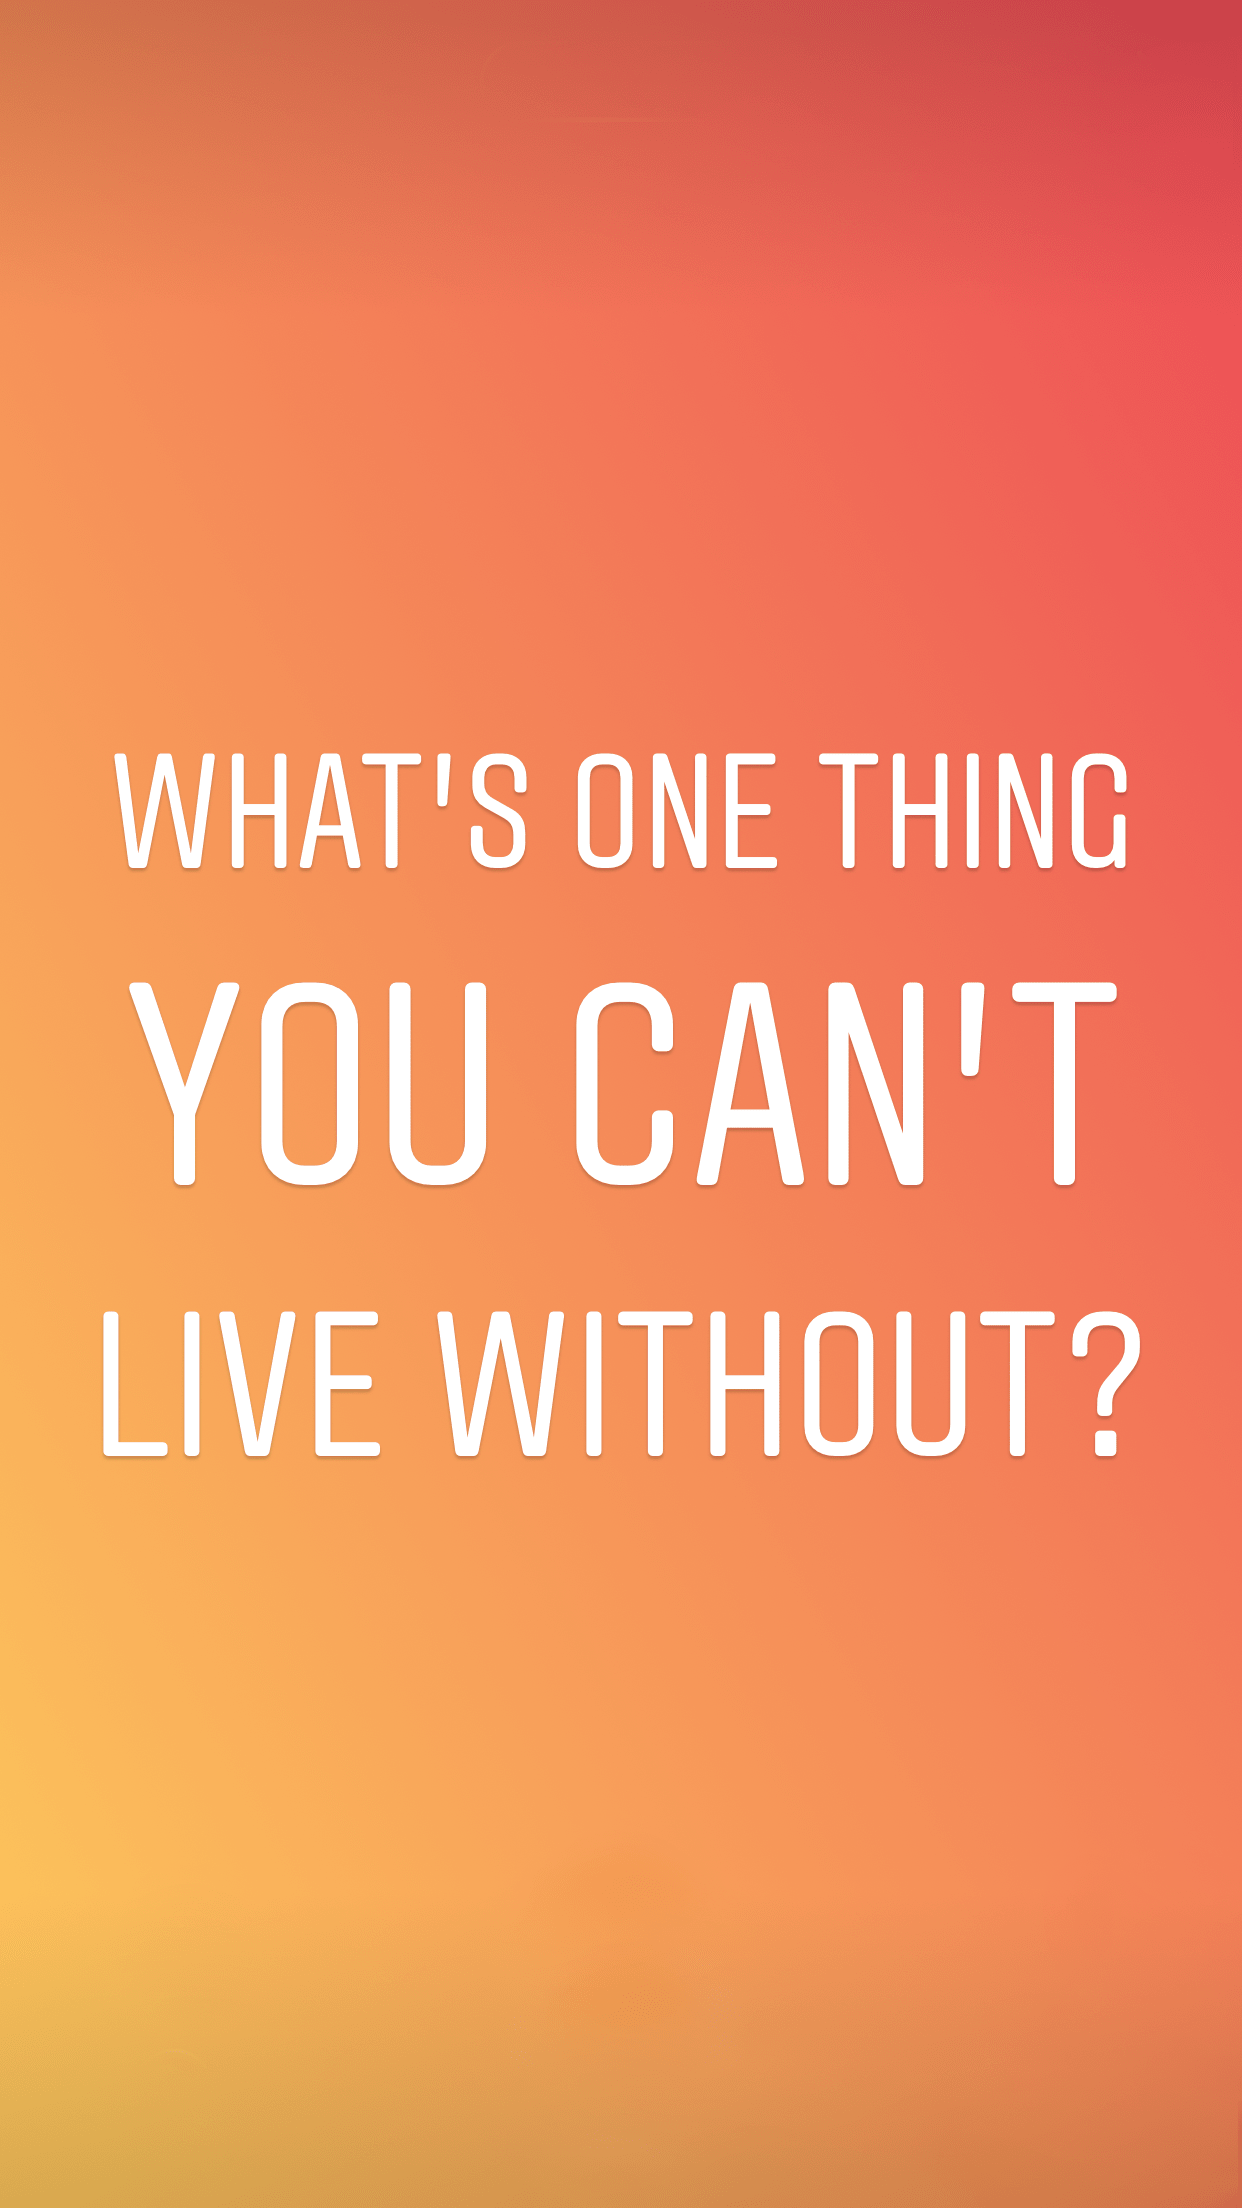 instagram stories template image to engage with your followers - what's the one thing you can't live without?